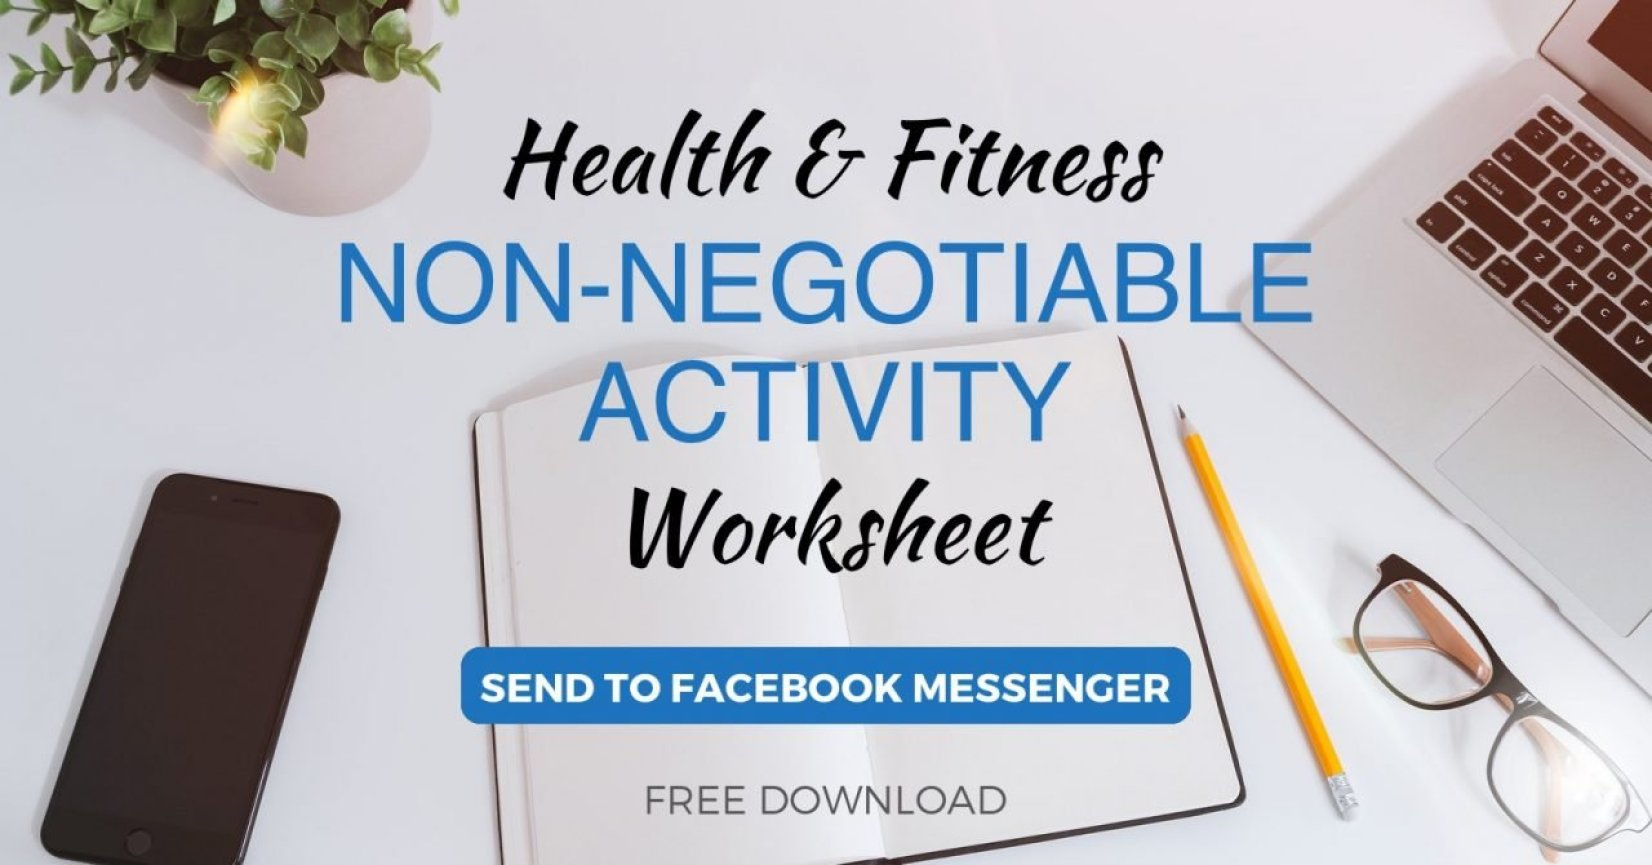 Willpower & Non-Negotiable Activity Worksheet Download | Tom Nikkola